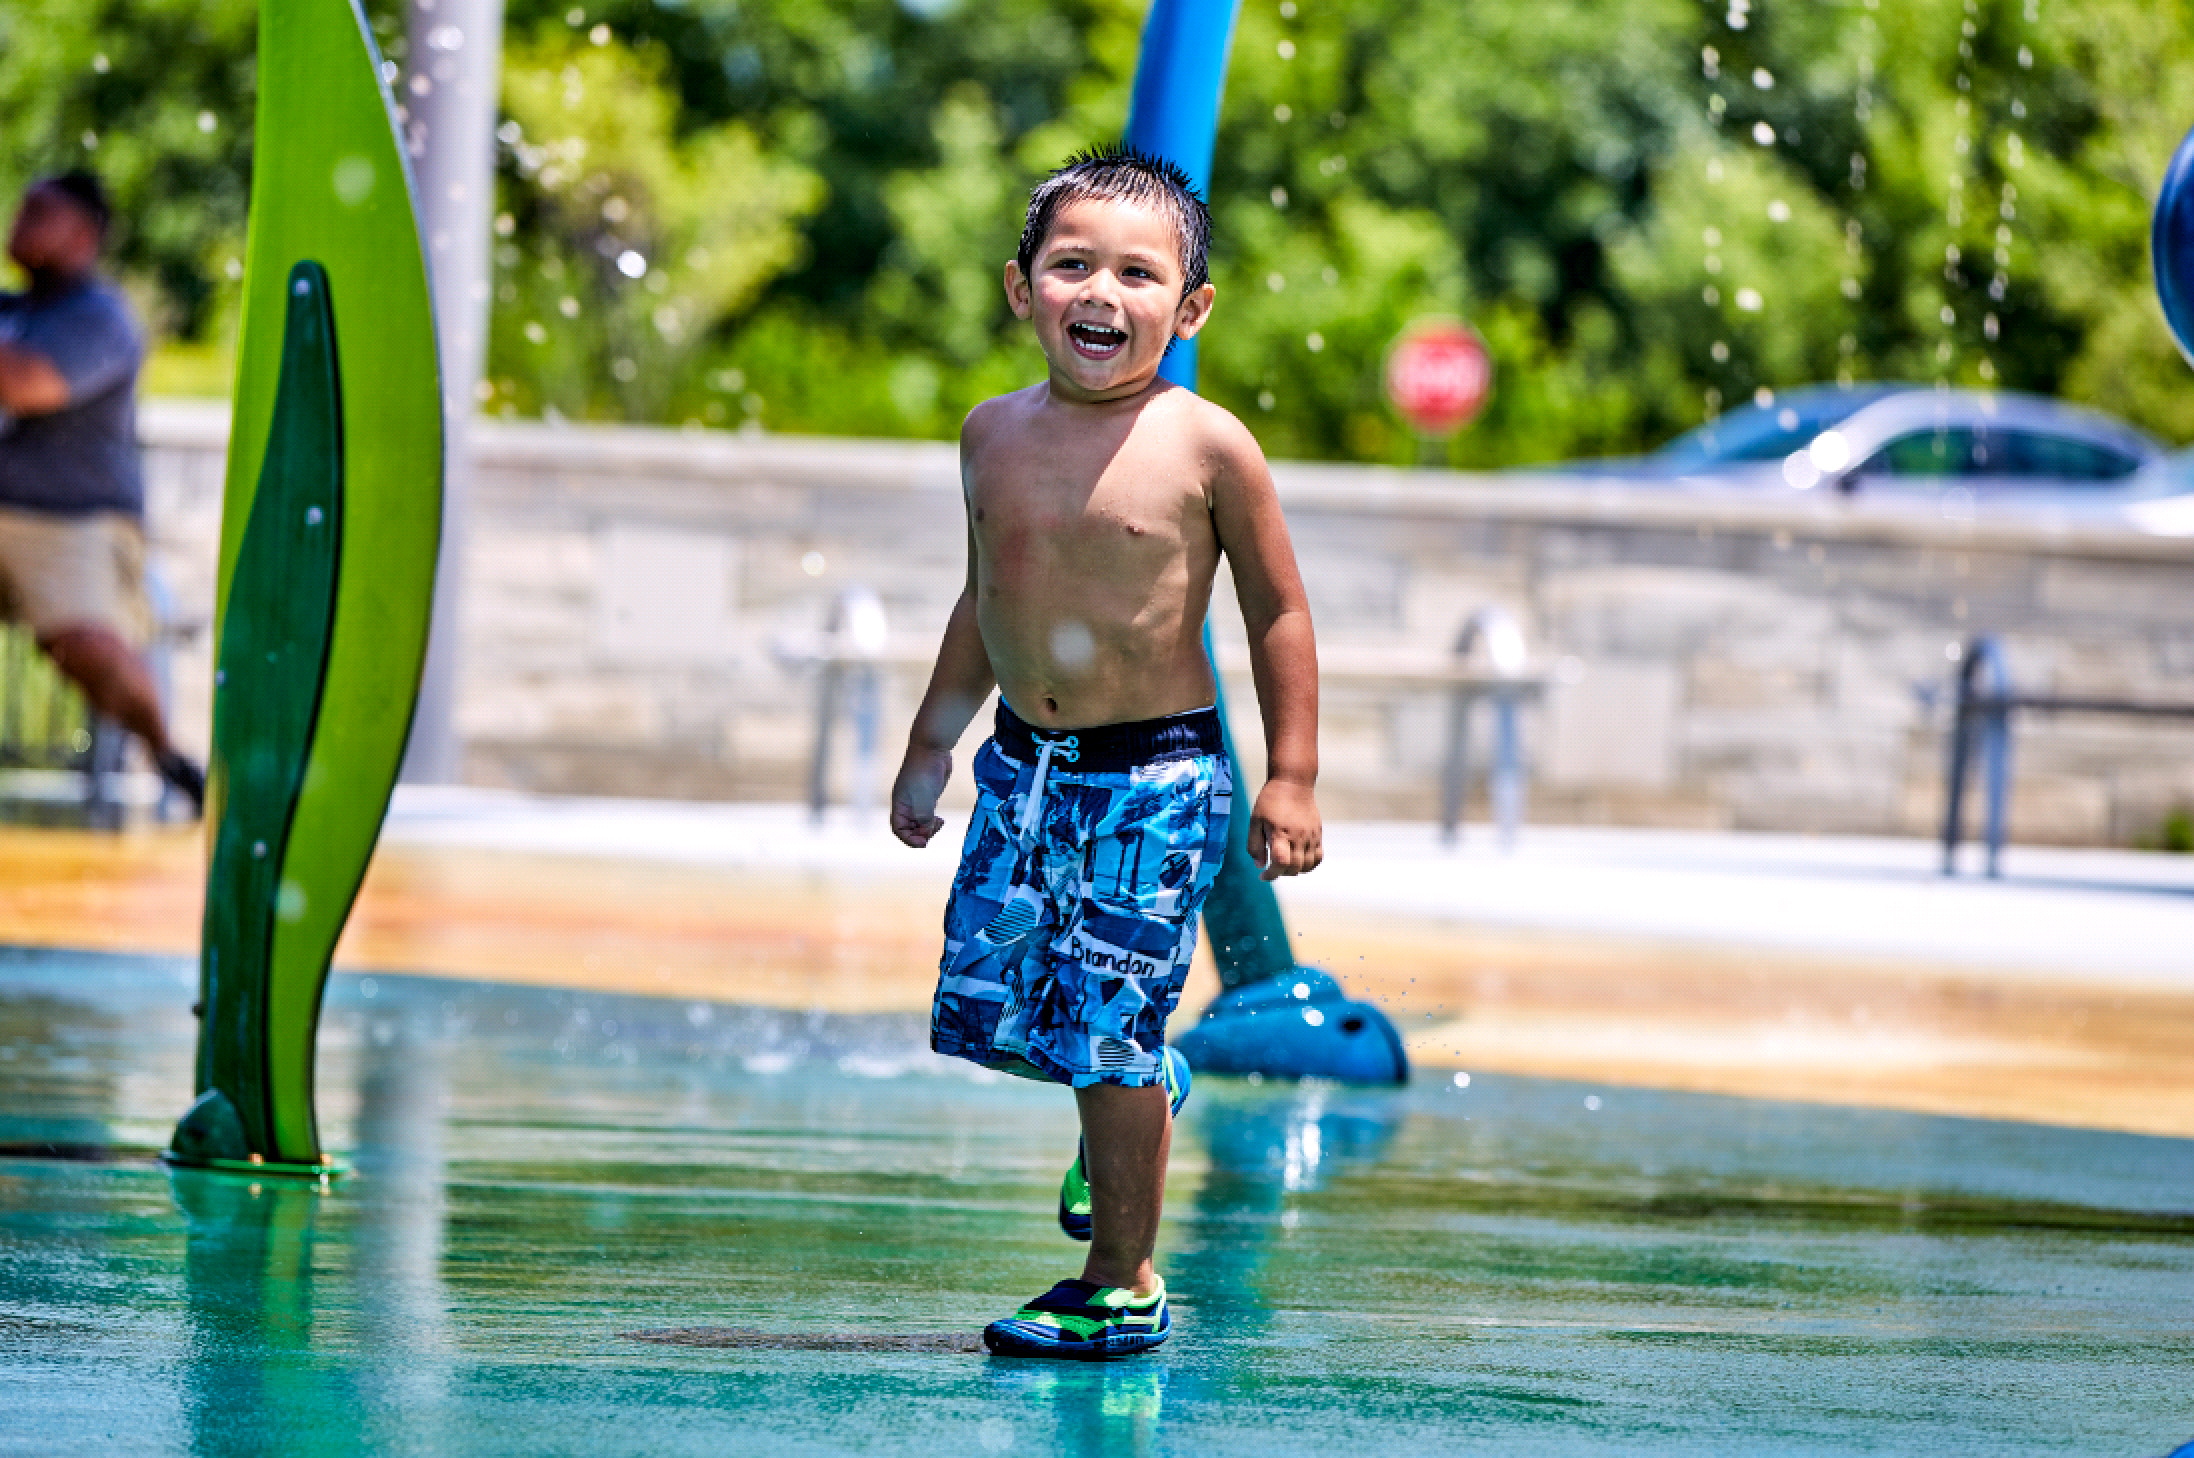 Splash Pads + Your Safety